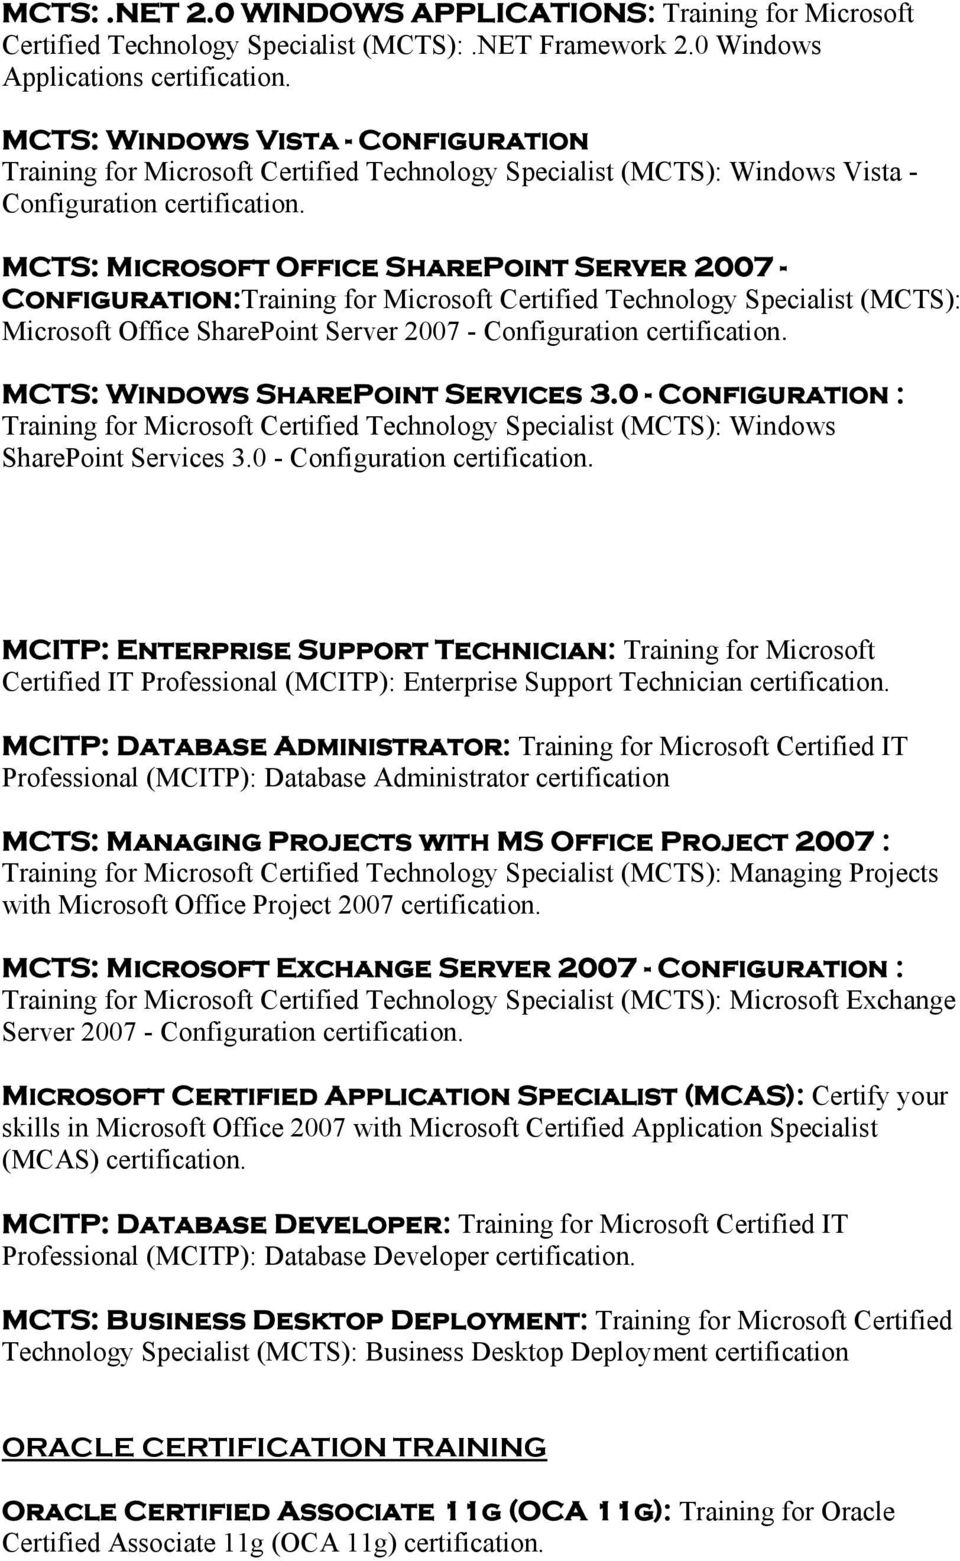 Configuration:Training for Microsoft Certified Technology Specialist (MCTS): Microsoft Office SharePoint Server 2007 - Configuration MCTS: Windows SharePoint Services 3.